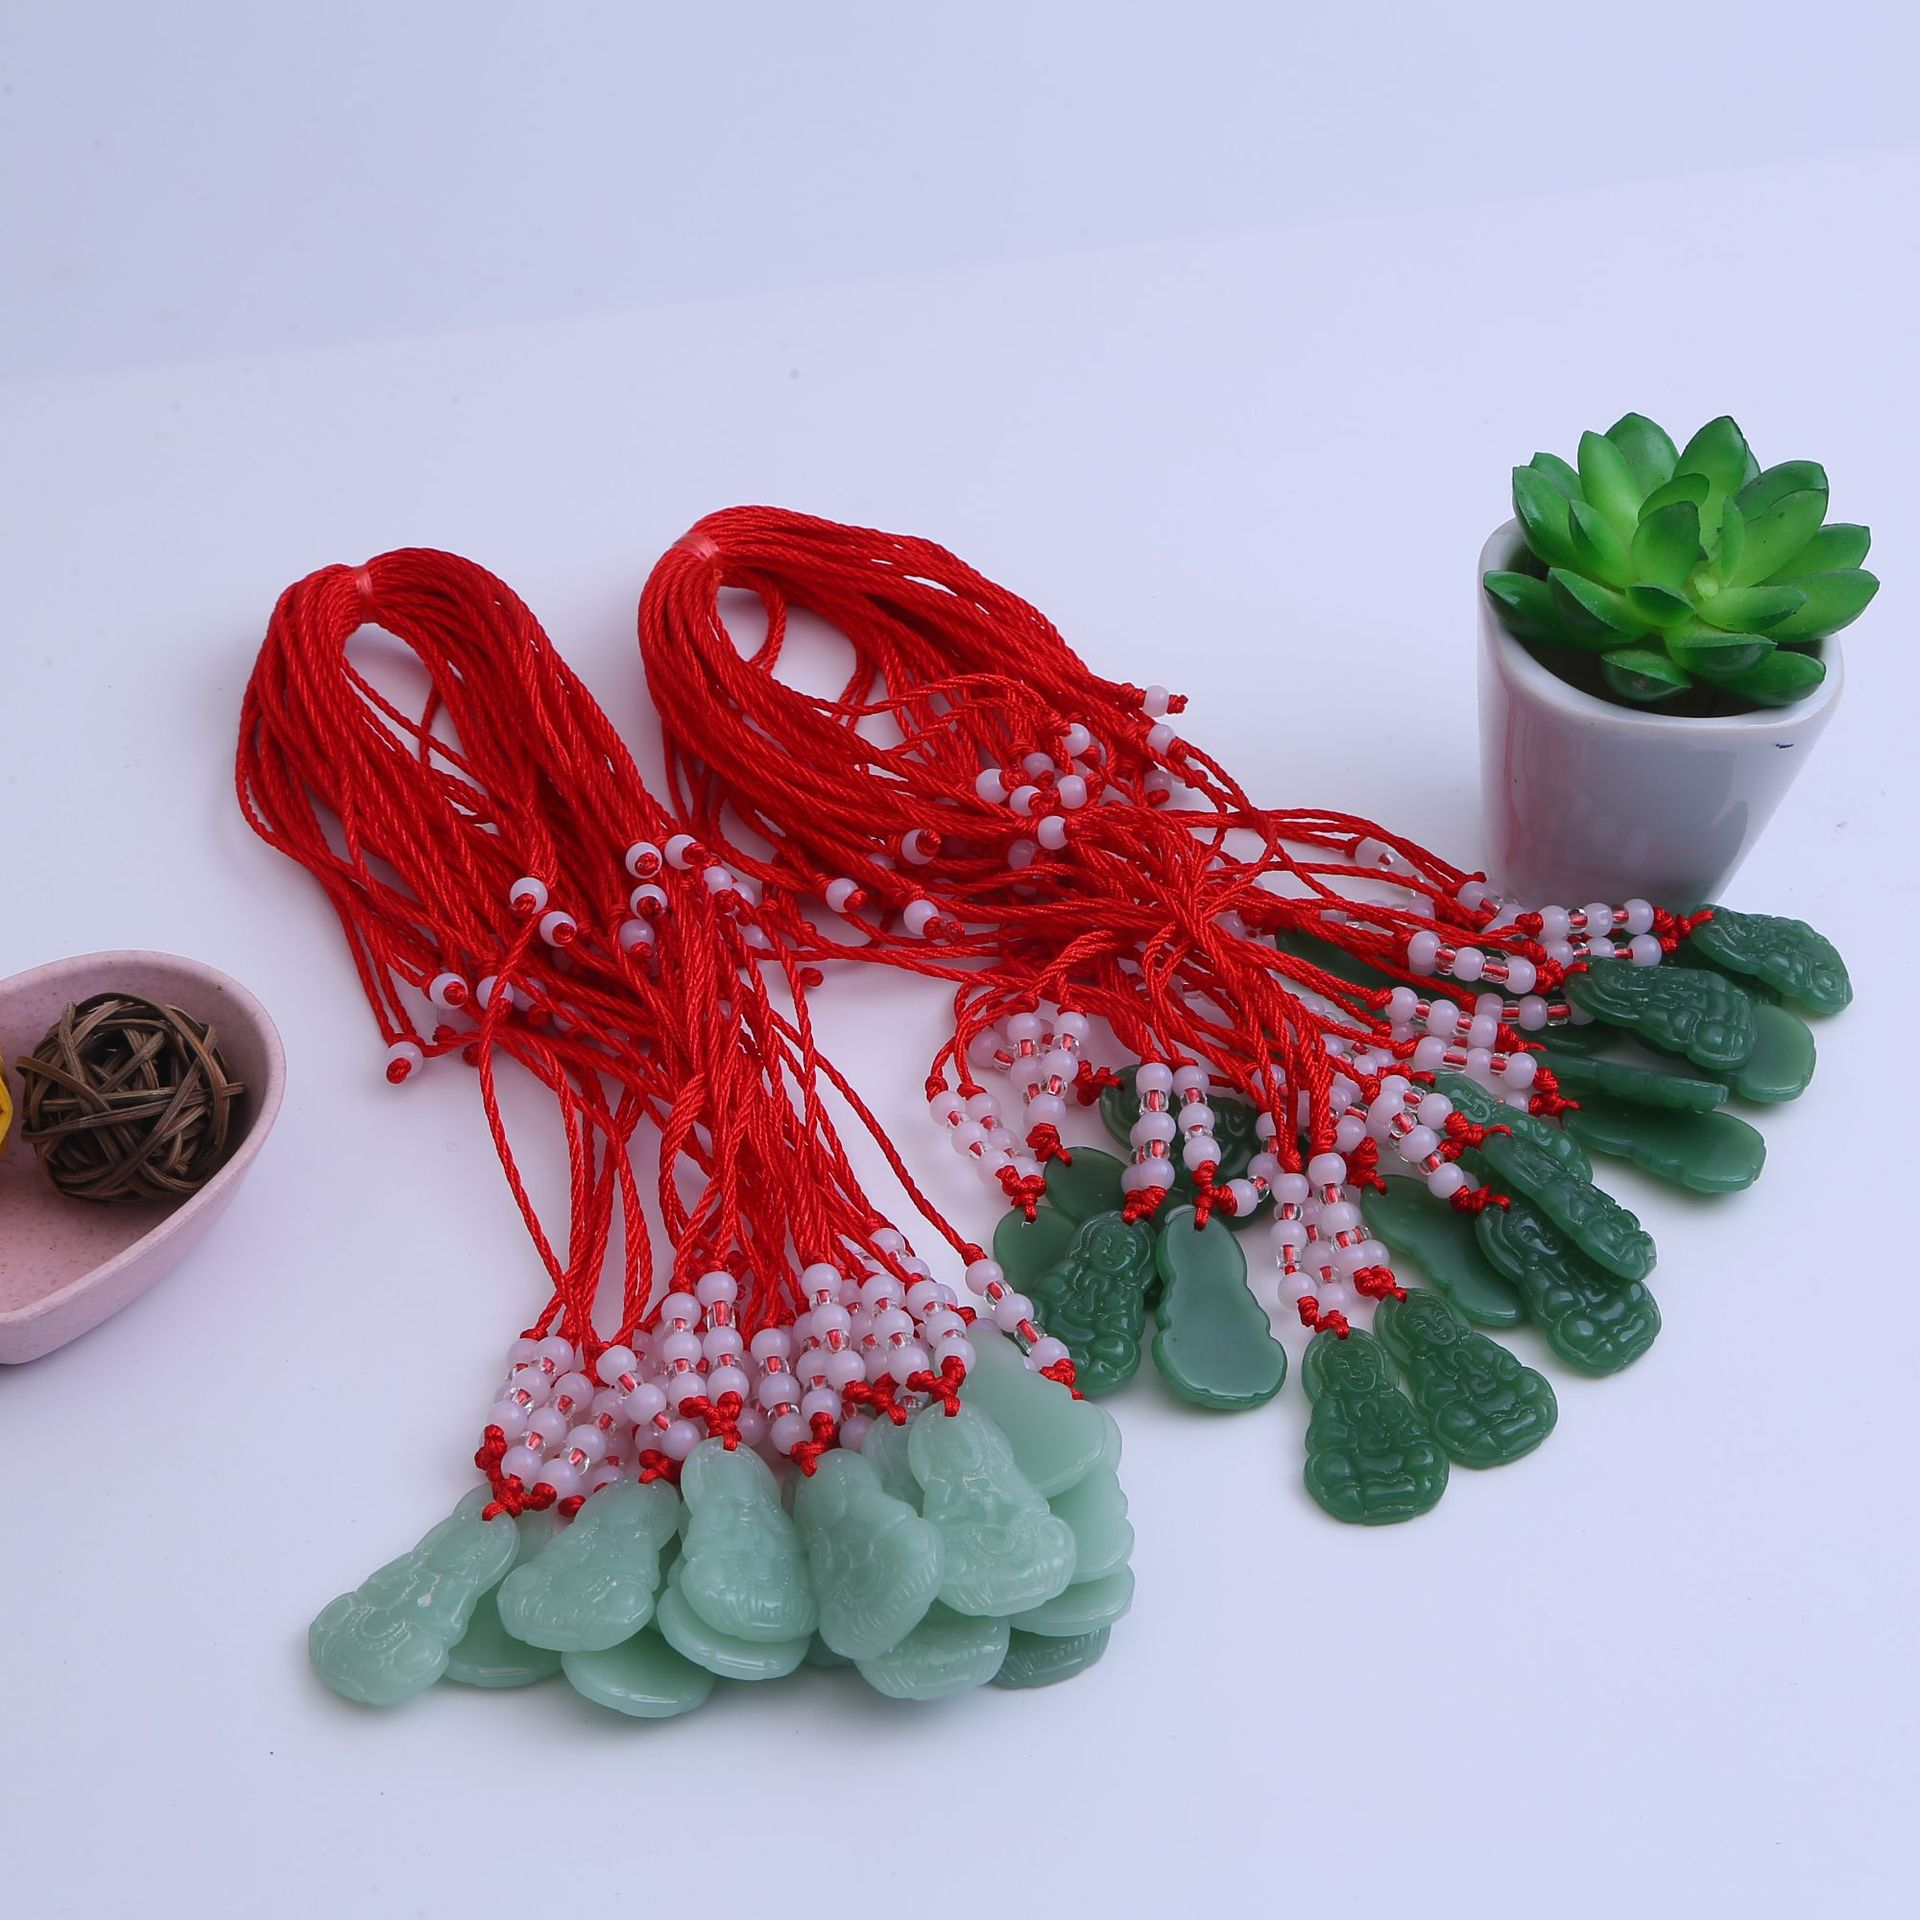 Zhu Yu 8 Beads Line Red String Necklace Guanyin Zhu Jade 8 Beads Line Red String Necklace Buddha Pendant Hang Up Supply Of Goods